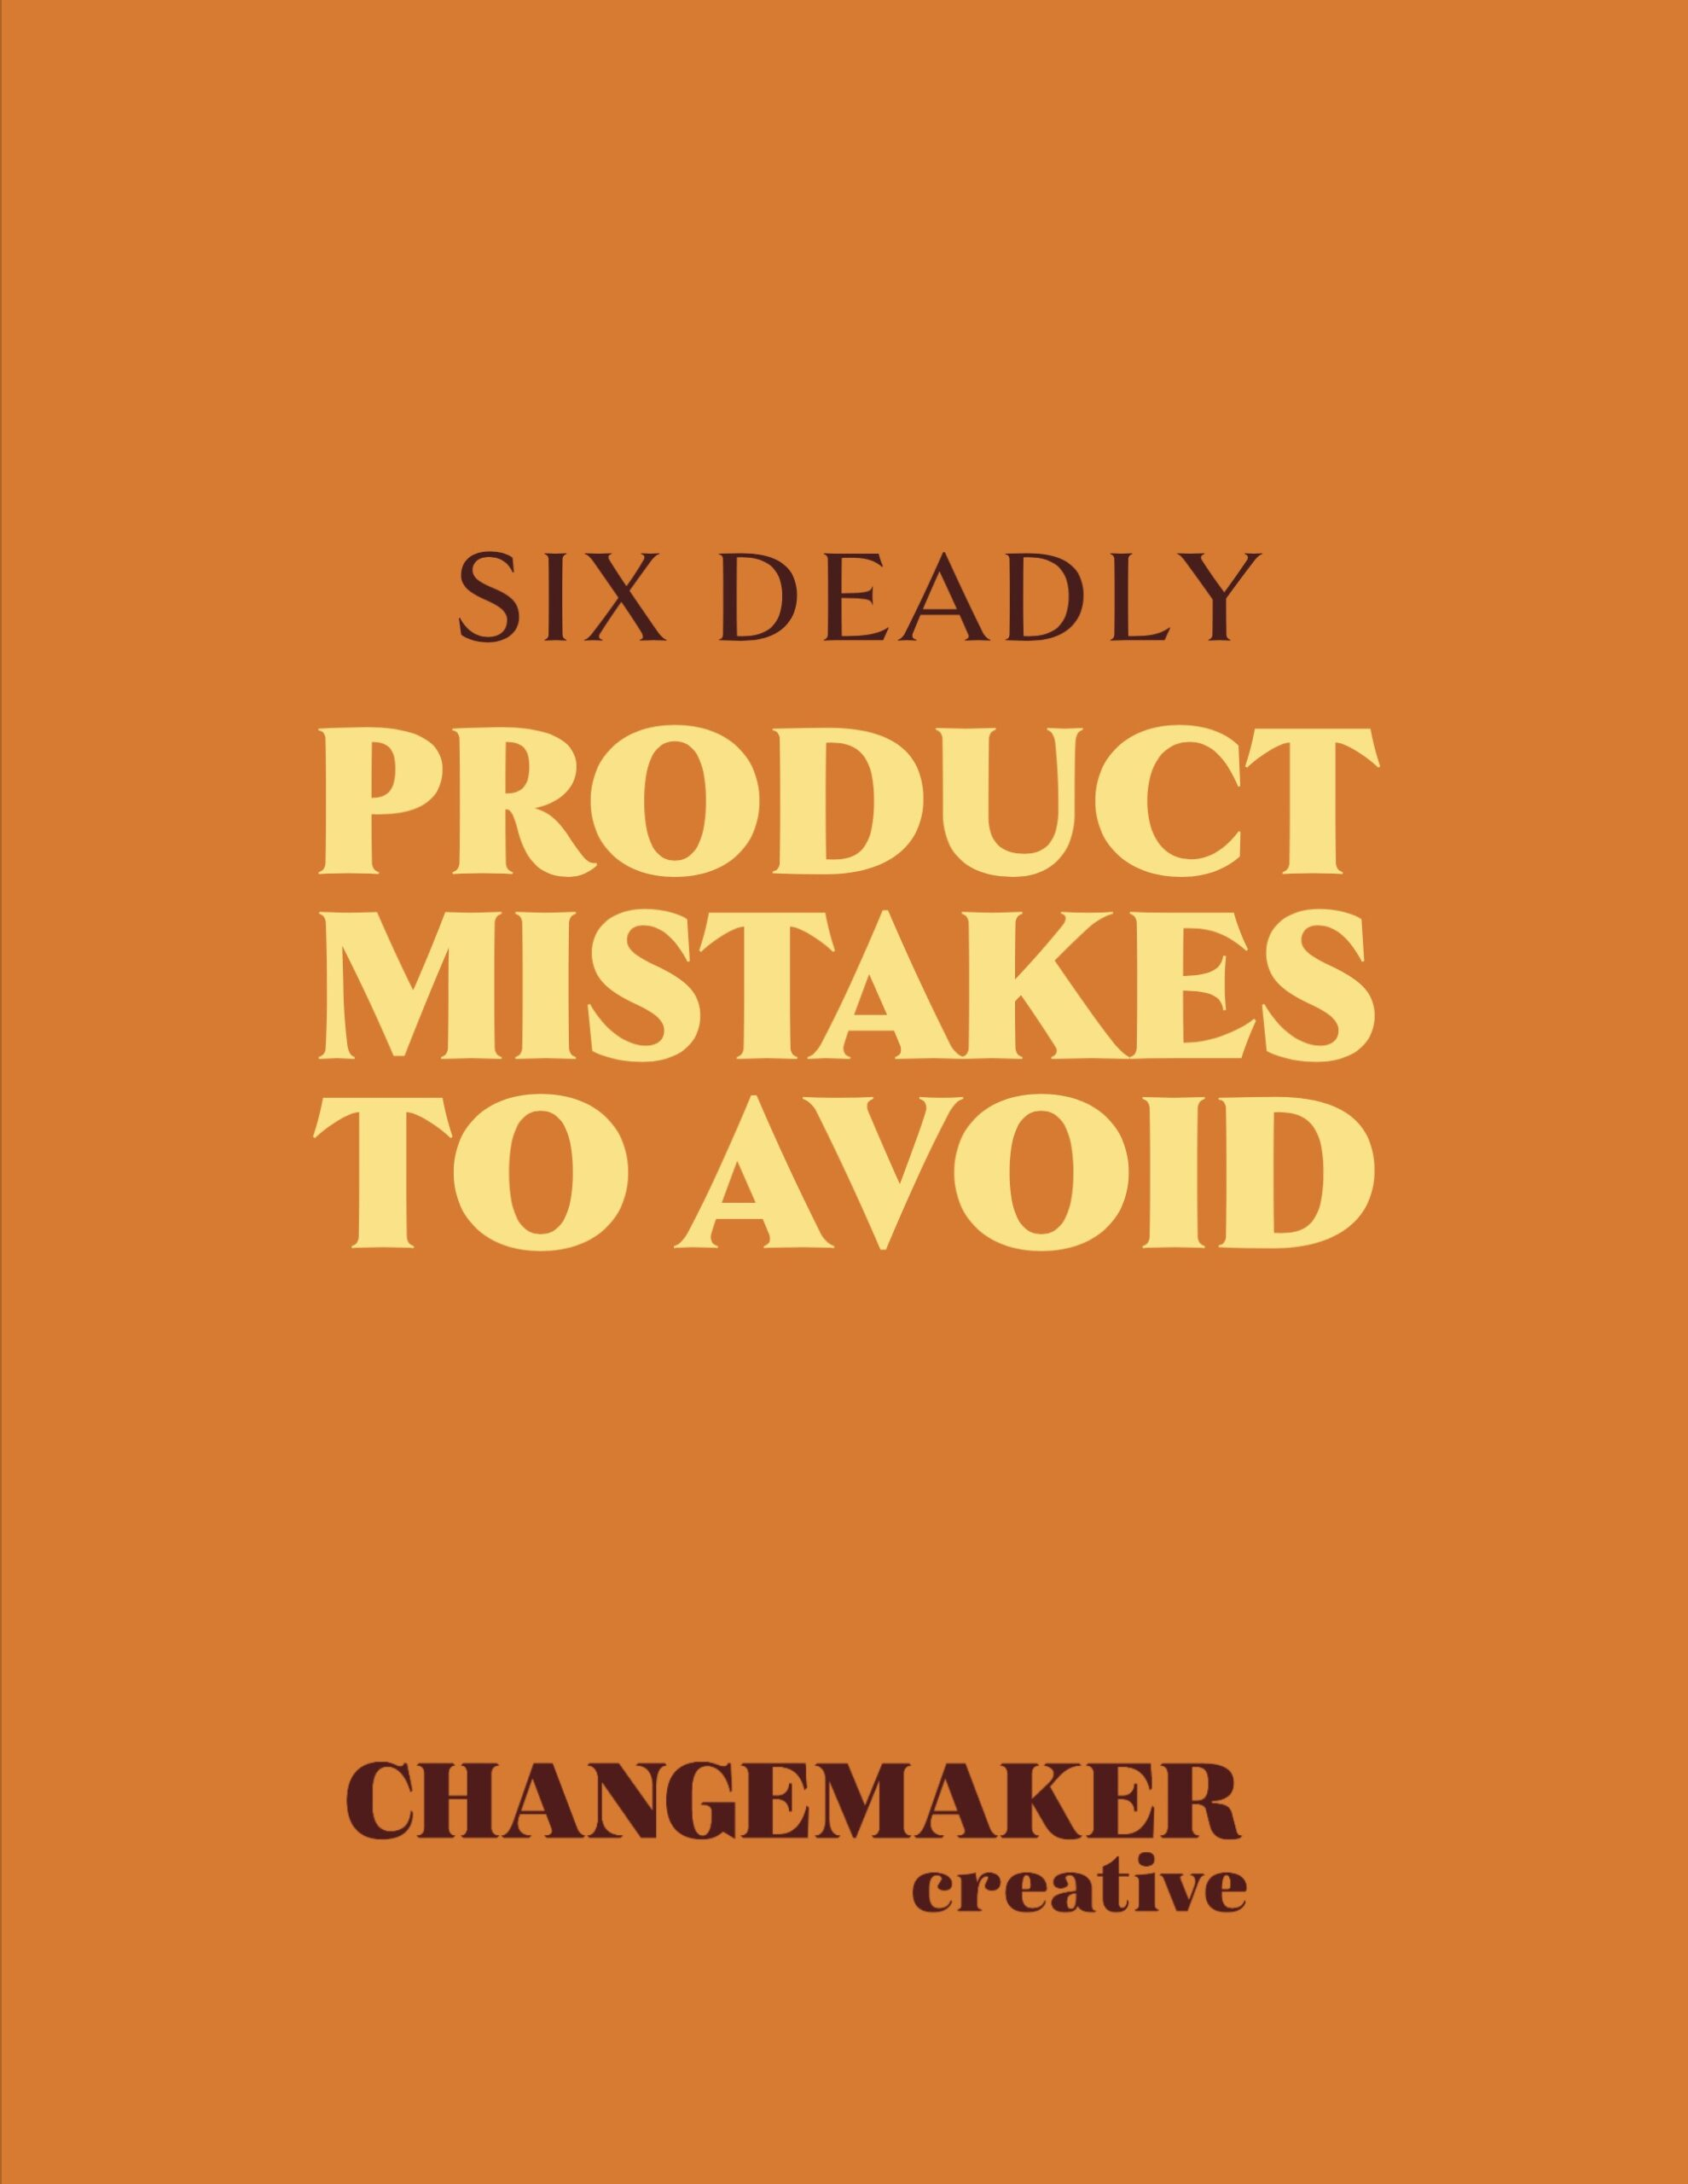 Product business mistakes to avoid